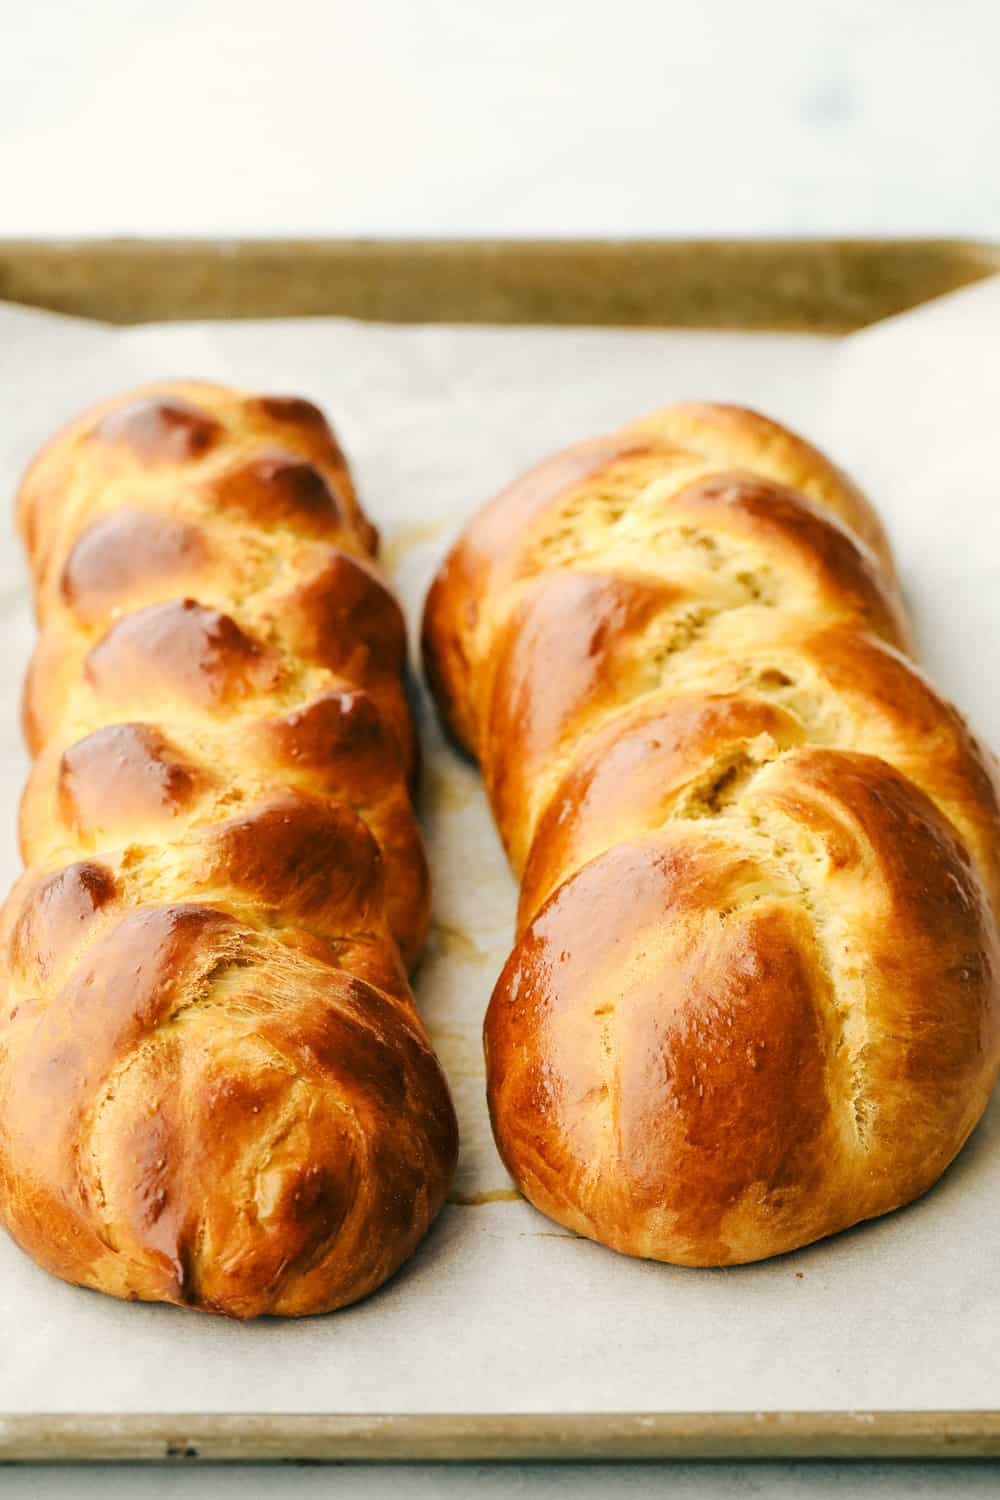 Two baked loaves of Challah golden brown.